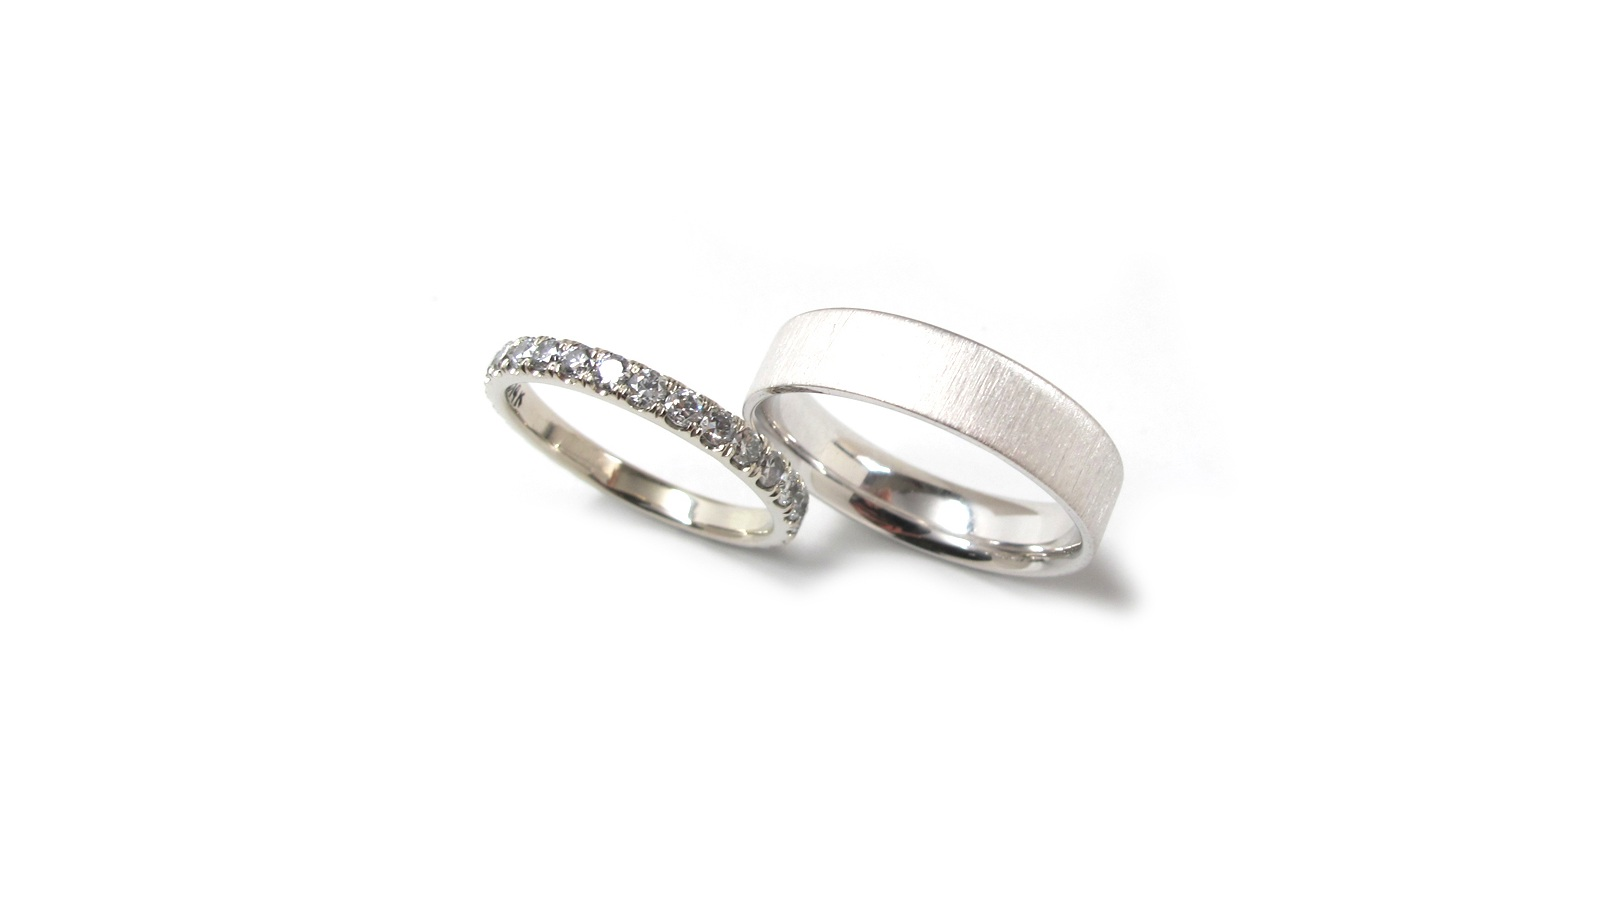 Nikka-Heirloom Diamond Eternity Band-2mm stone size    Dan-14k White Gold Comfort Fit Flat Band with Satin Lined Finish-5mm